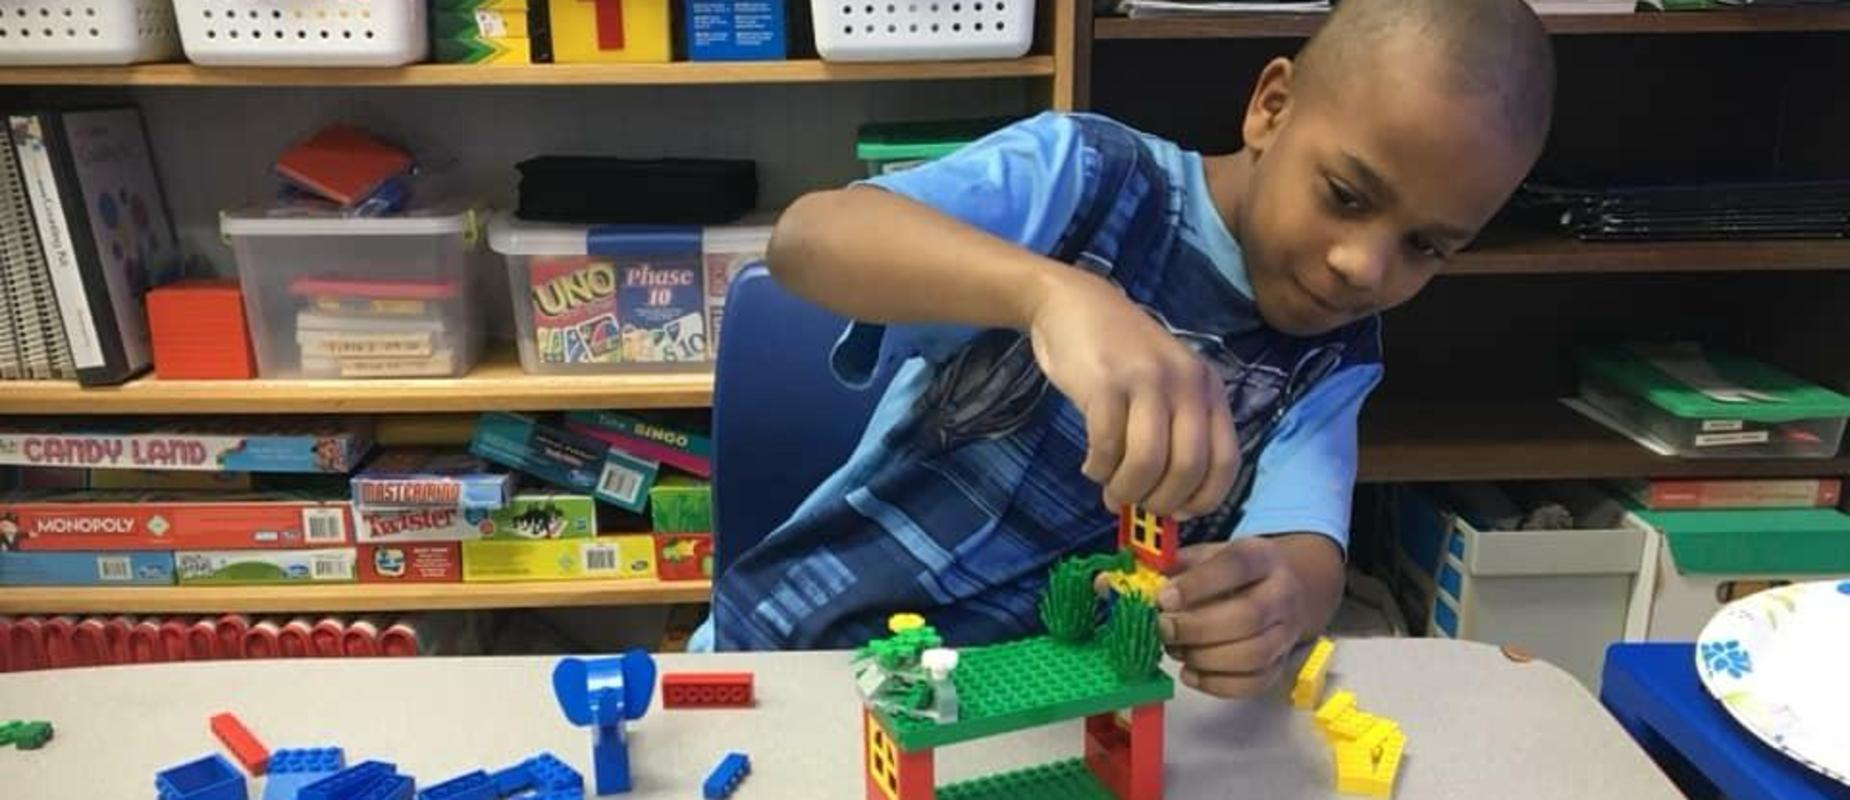 Student creating with Legos